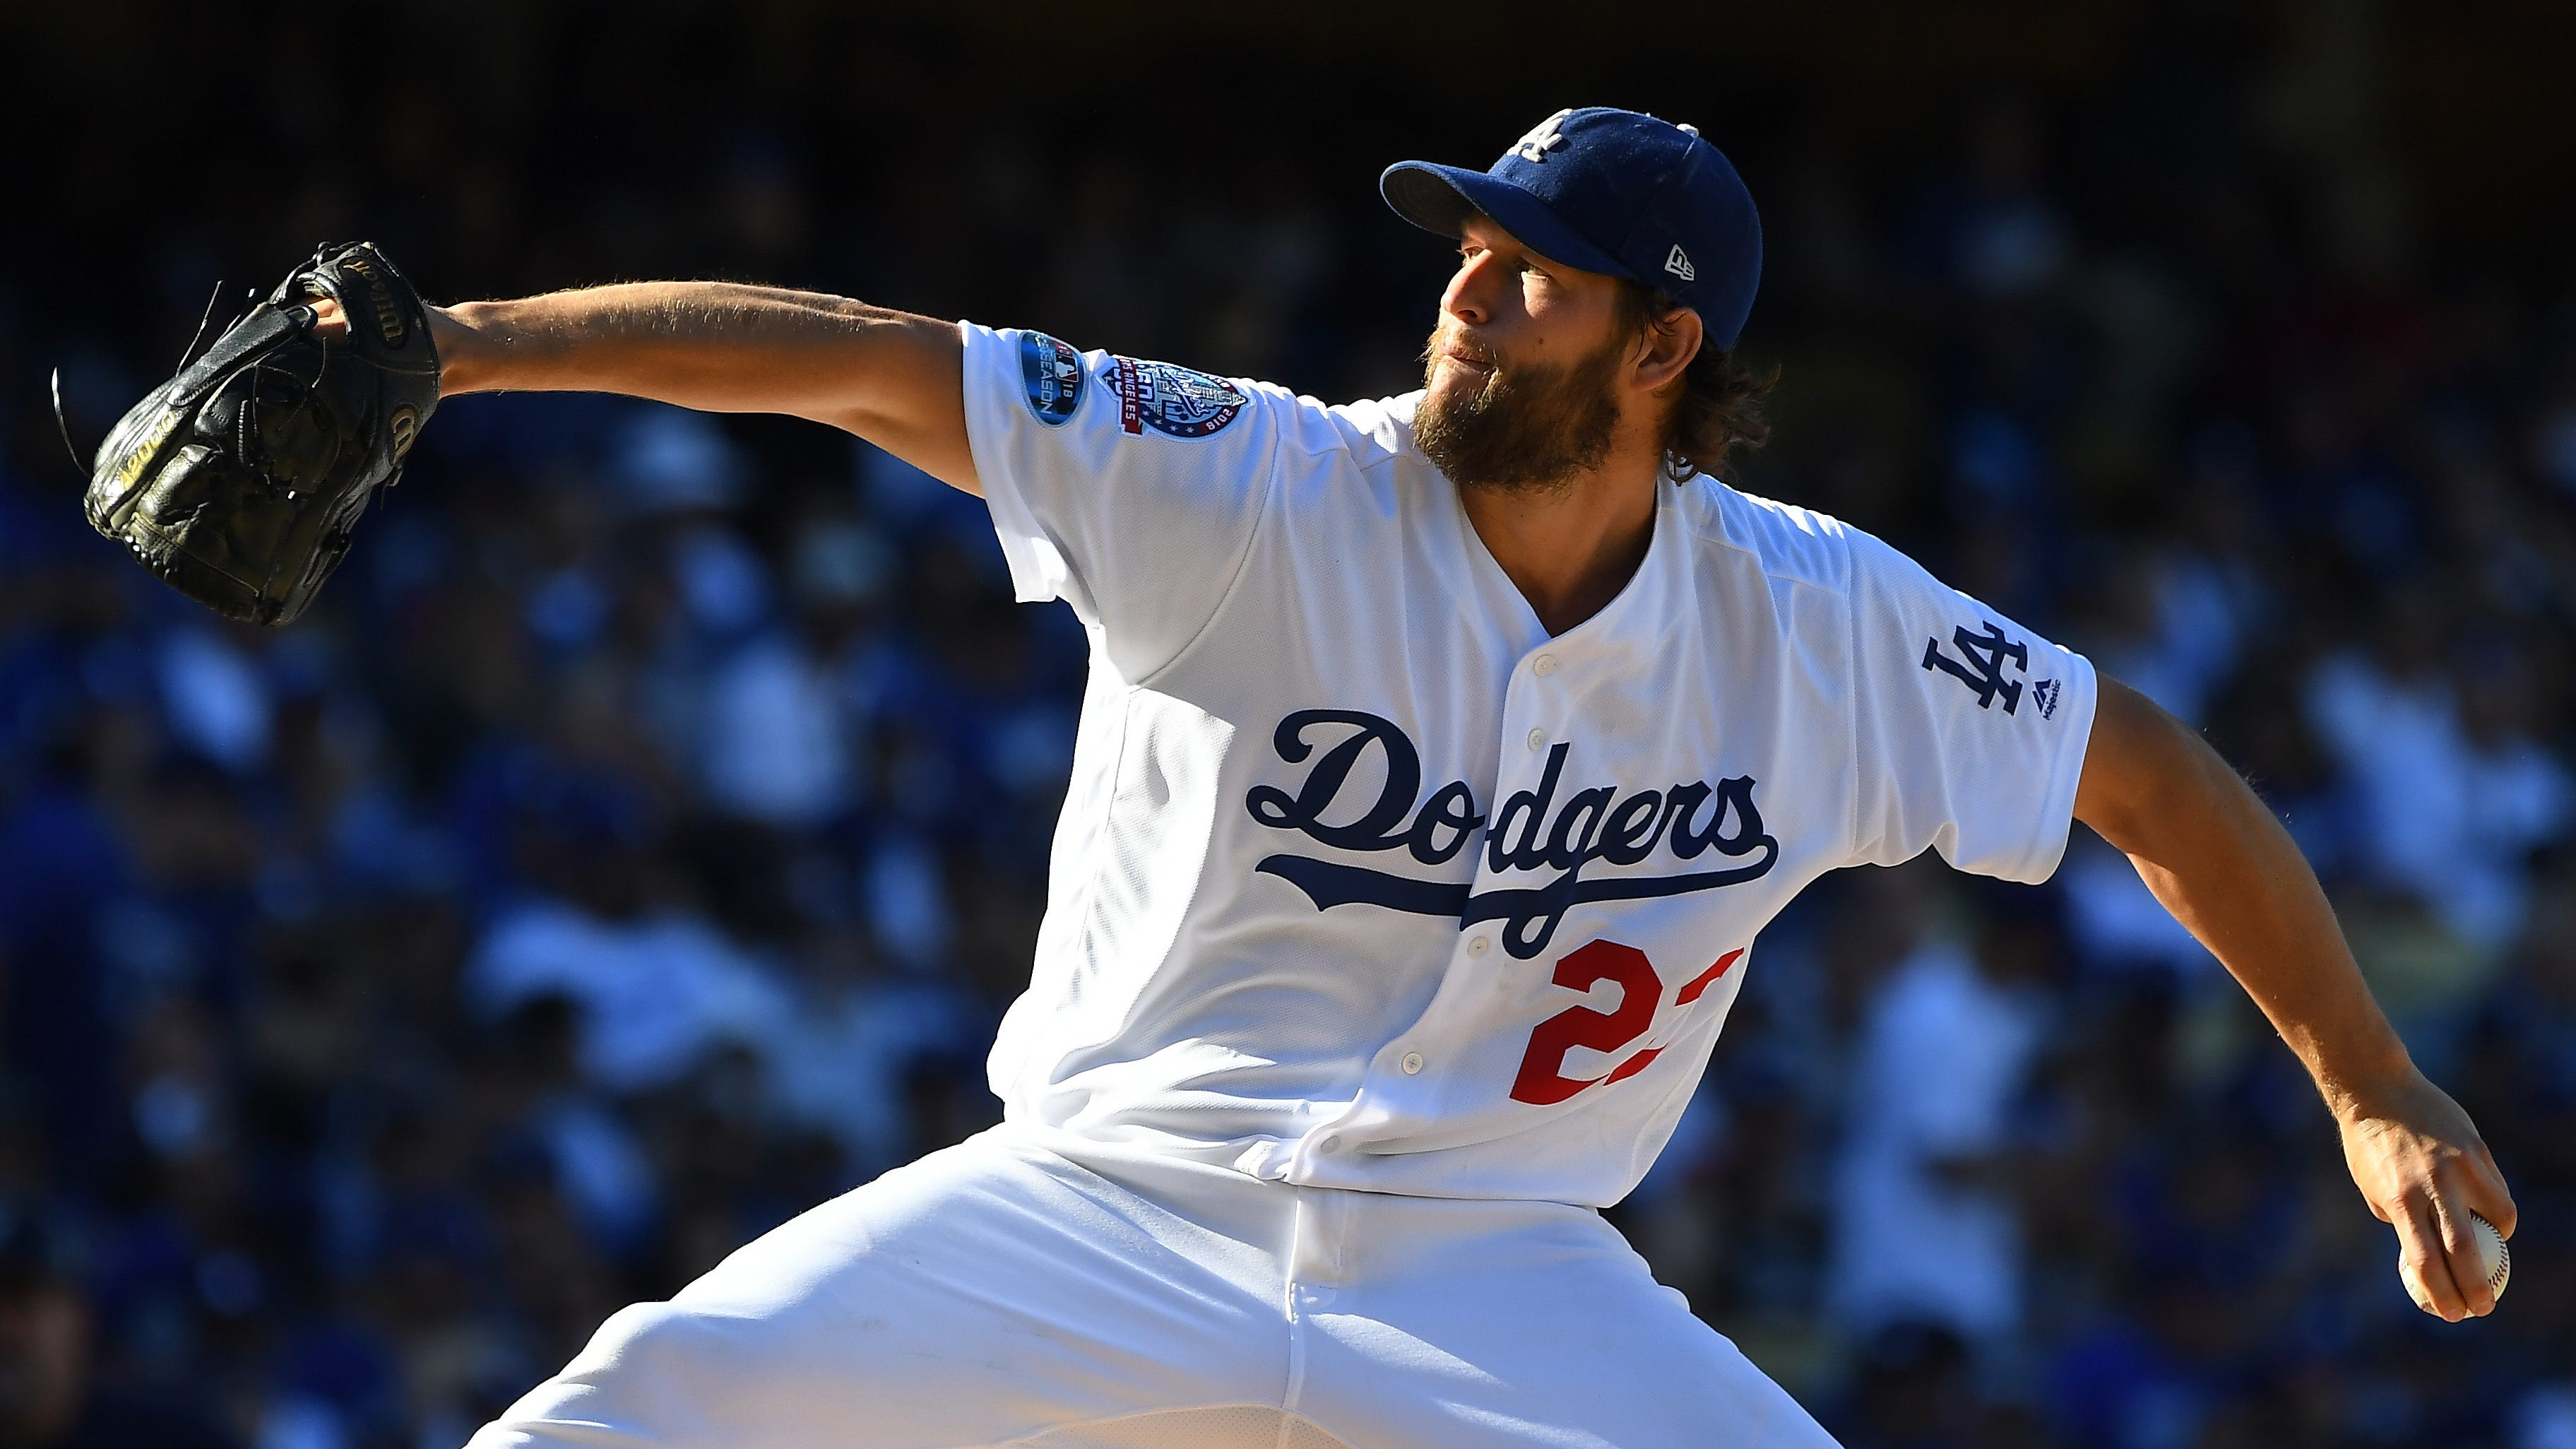 Kershaw bounced back from a rough outing in Game 1 to turn a stellar performance in Game 5.